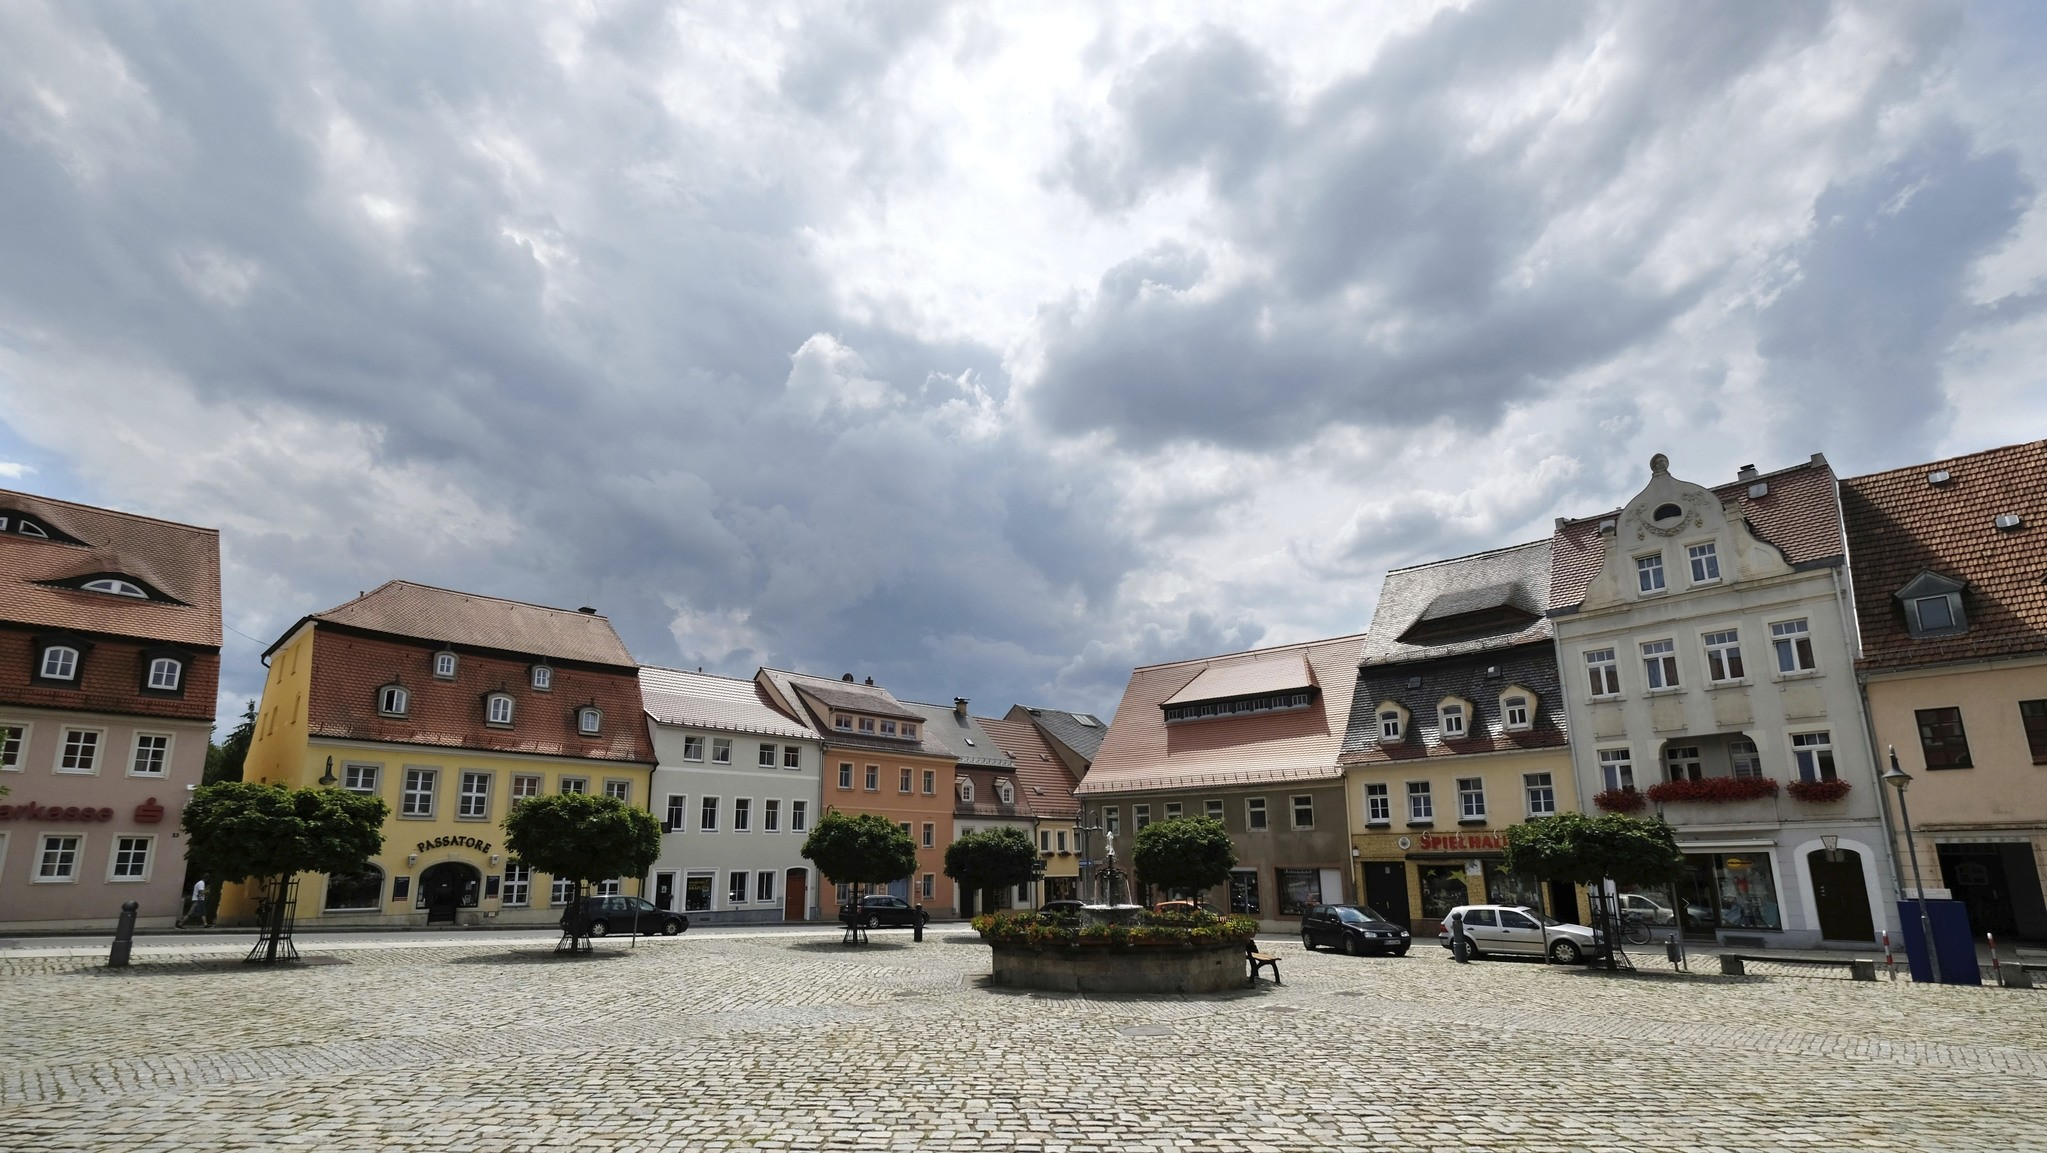 The market place in Pulsnitz, the town where the German runaway girl is from, near Dresden photographed on Saturday, July 22, 2017. (DPA via AP)